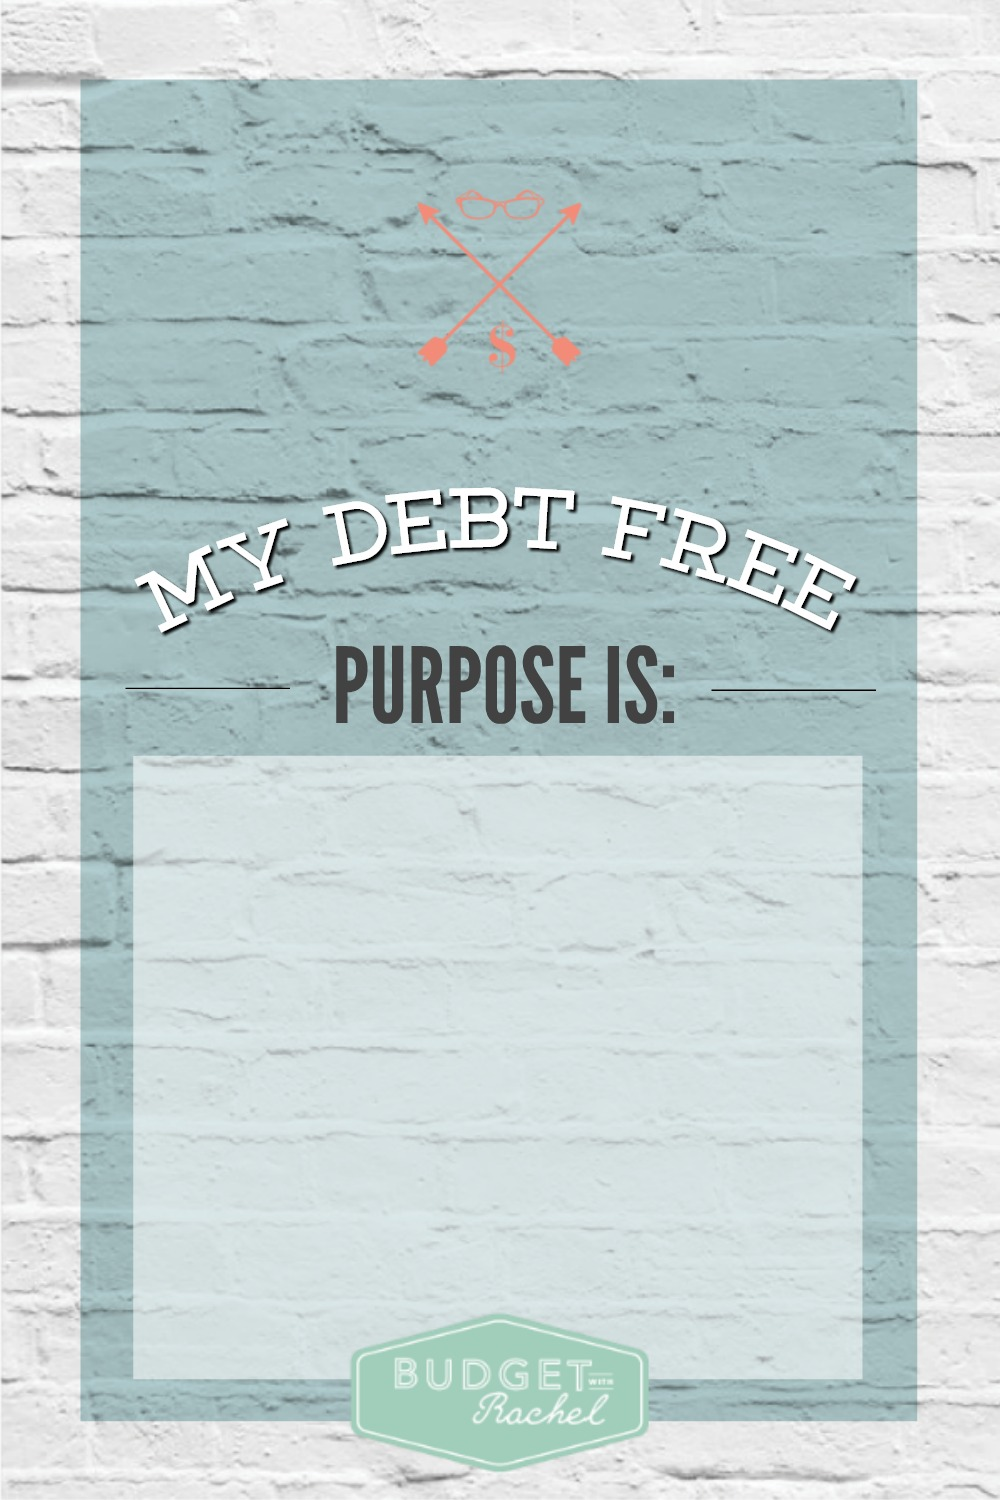 The Importance of Knowing WHY You Want To Be Debt Free Finding Your Debt Free Purpose. I didn't know how important this would be for me, but it has been huge! This has helped me stick with debt payoff because now I know my debt free purpose! I have figured this out and focus on it all the time for the exact reasons listed.